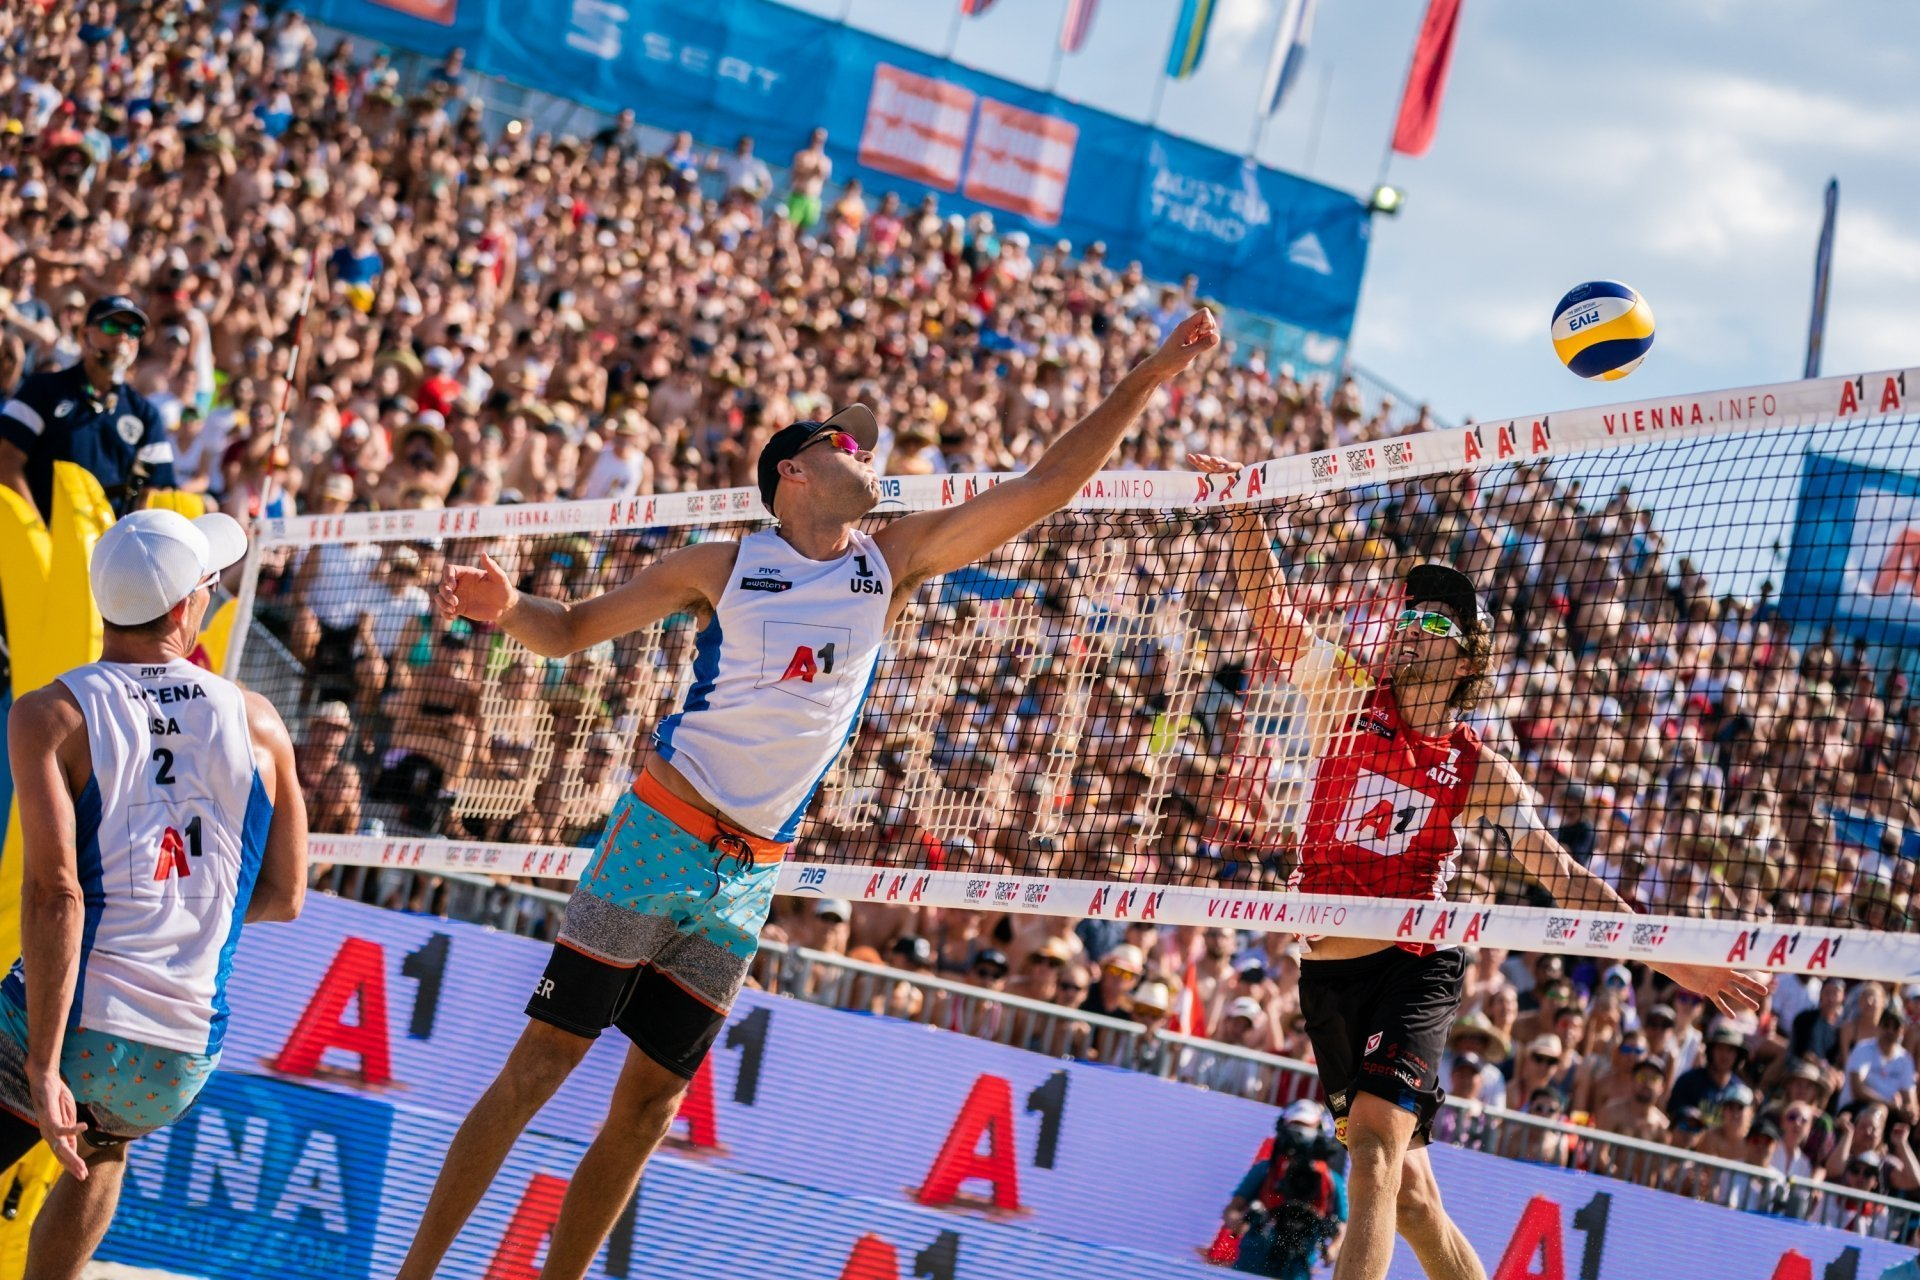 Nick Lucena (left) and Phil Dalhausser (both in white) in action in Vienna last year - their last World Tour appearance